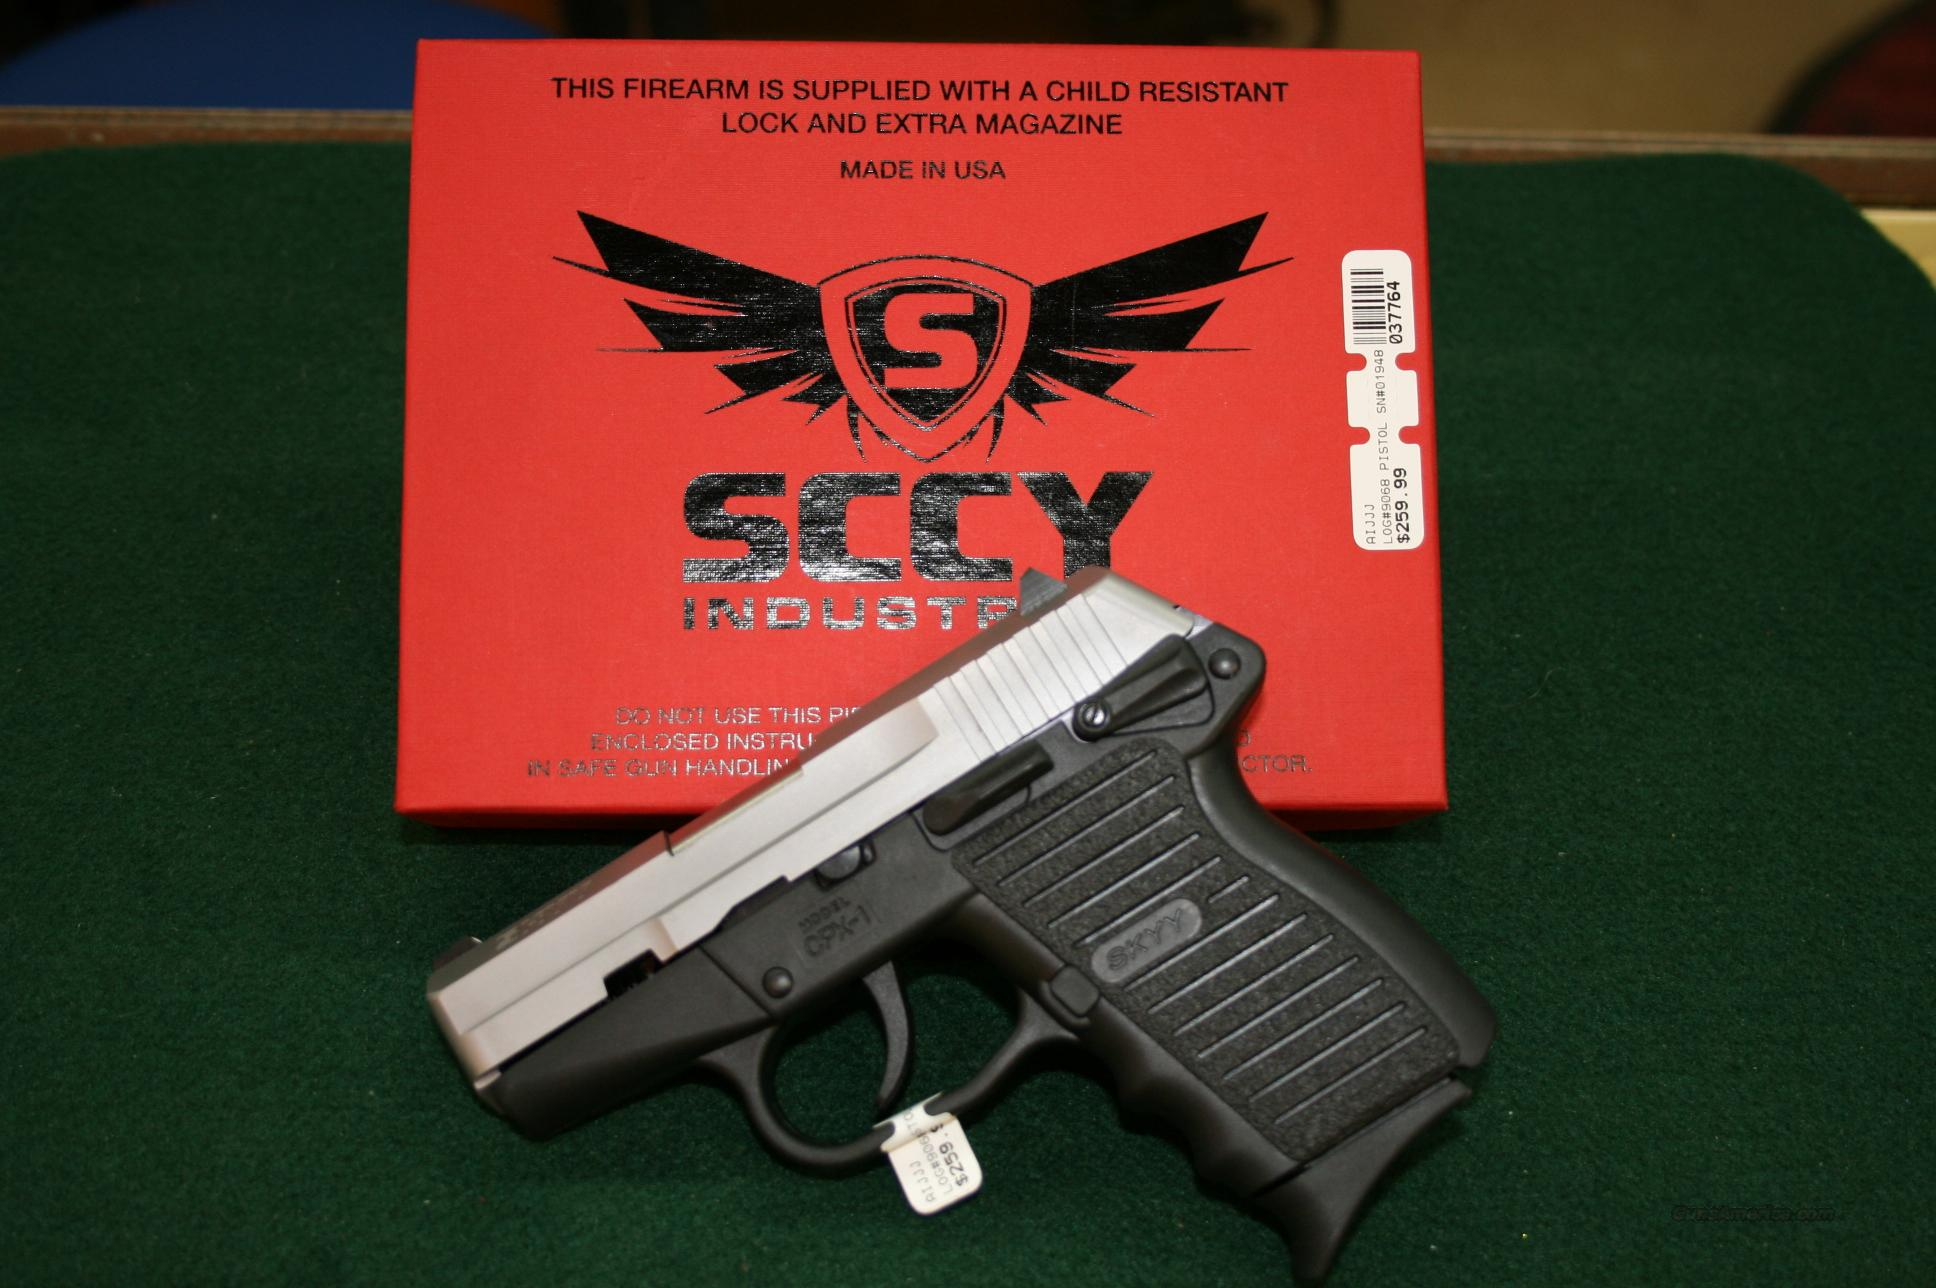 Skyy - Sccy Industries 9mm  Guns > Pistols > S Misc Pistols